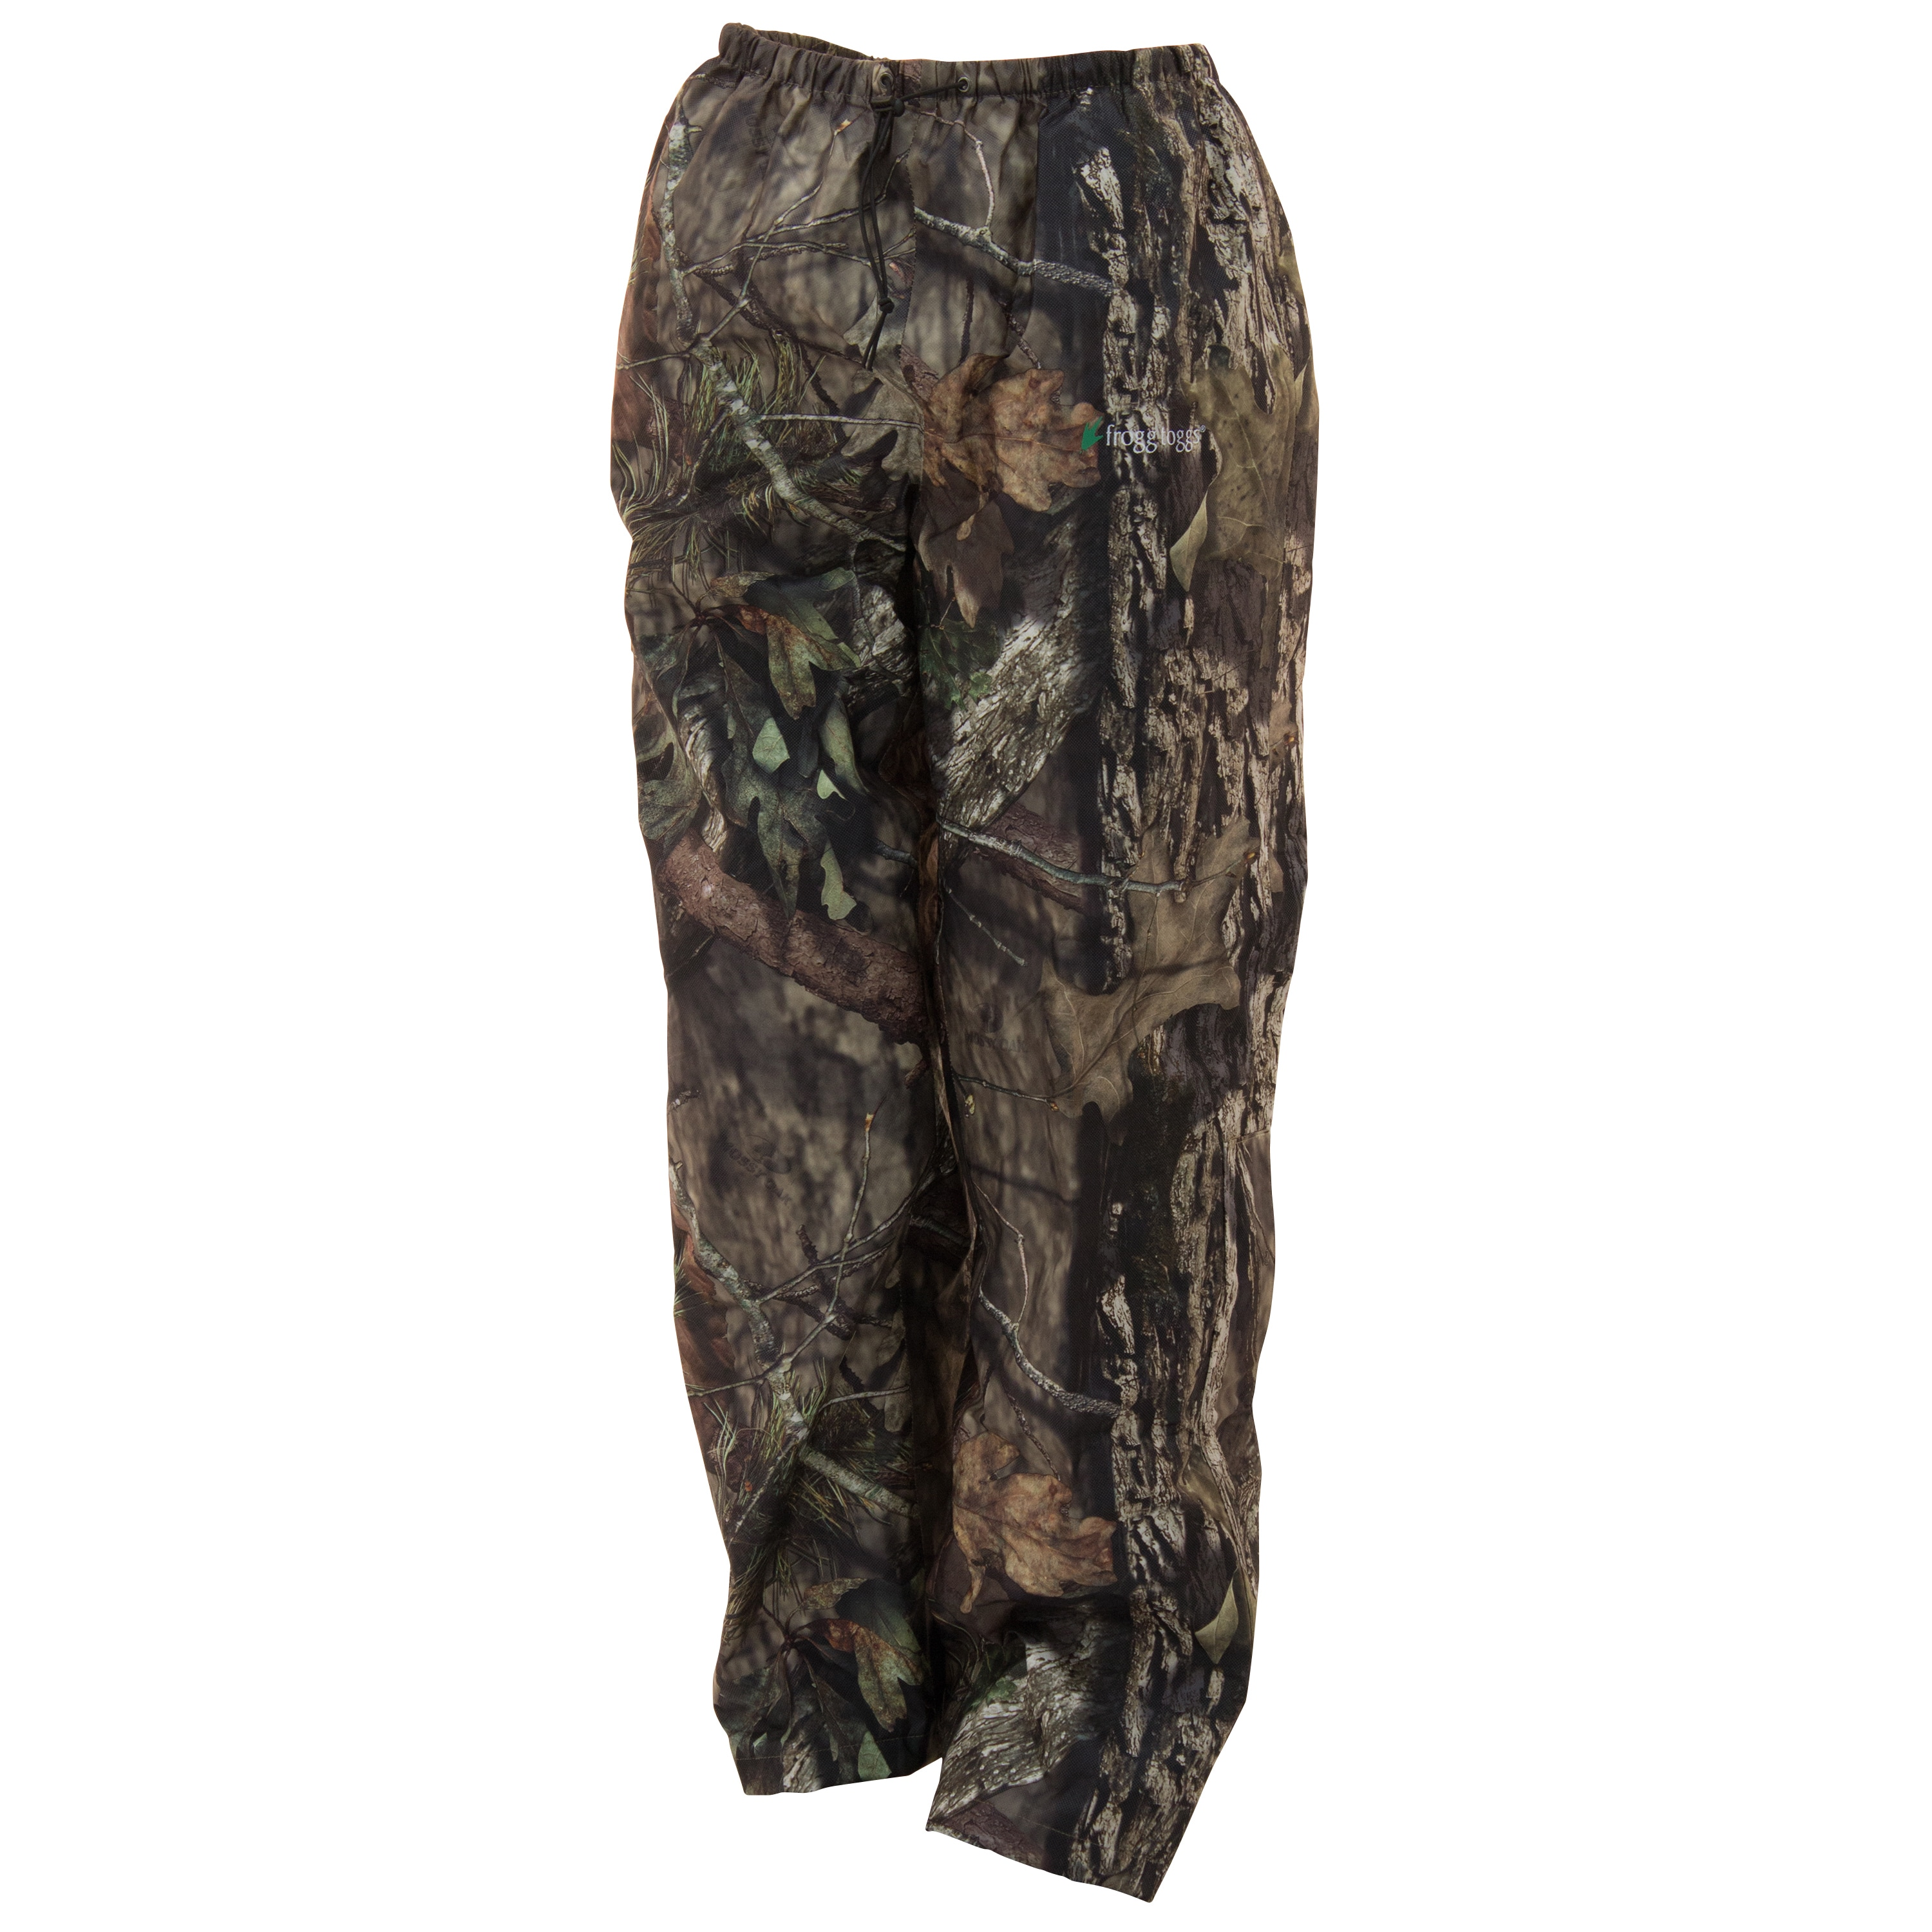 b887a569fa913 Shop Frogg Toggs Pro Action Mossy Oak Break Up Country Camo Pants - Free  Shipping On Orders Over $45 - Overstock - 13869115